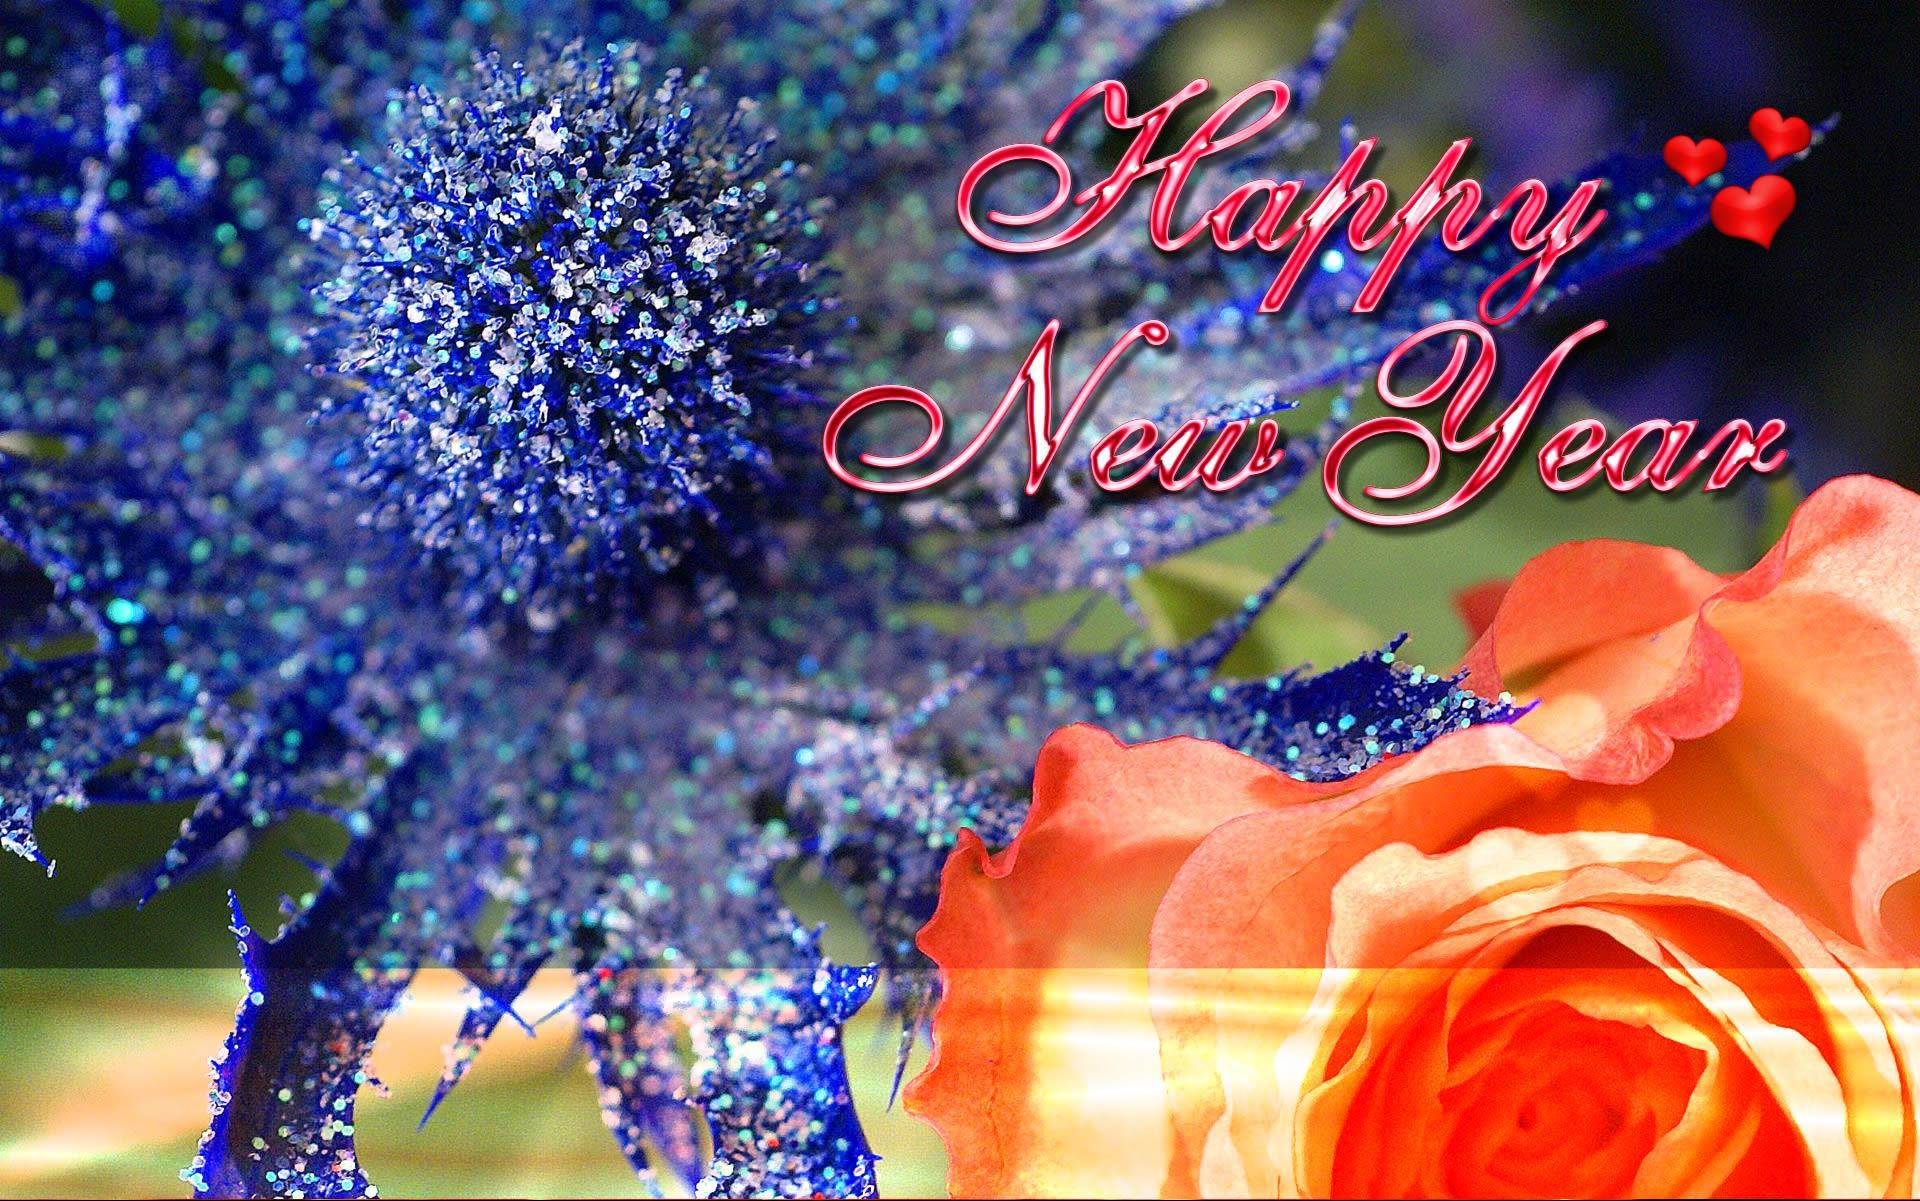 Happy new year mms 2015 new year wallpaper 1920x1200 16 10 aspect happy new year mms 2015 new year wallpaper 1920x1200 16 10 aspect nice and colorful kristyandbryce Gallery